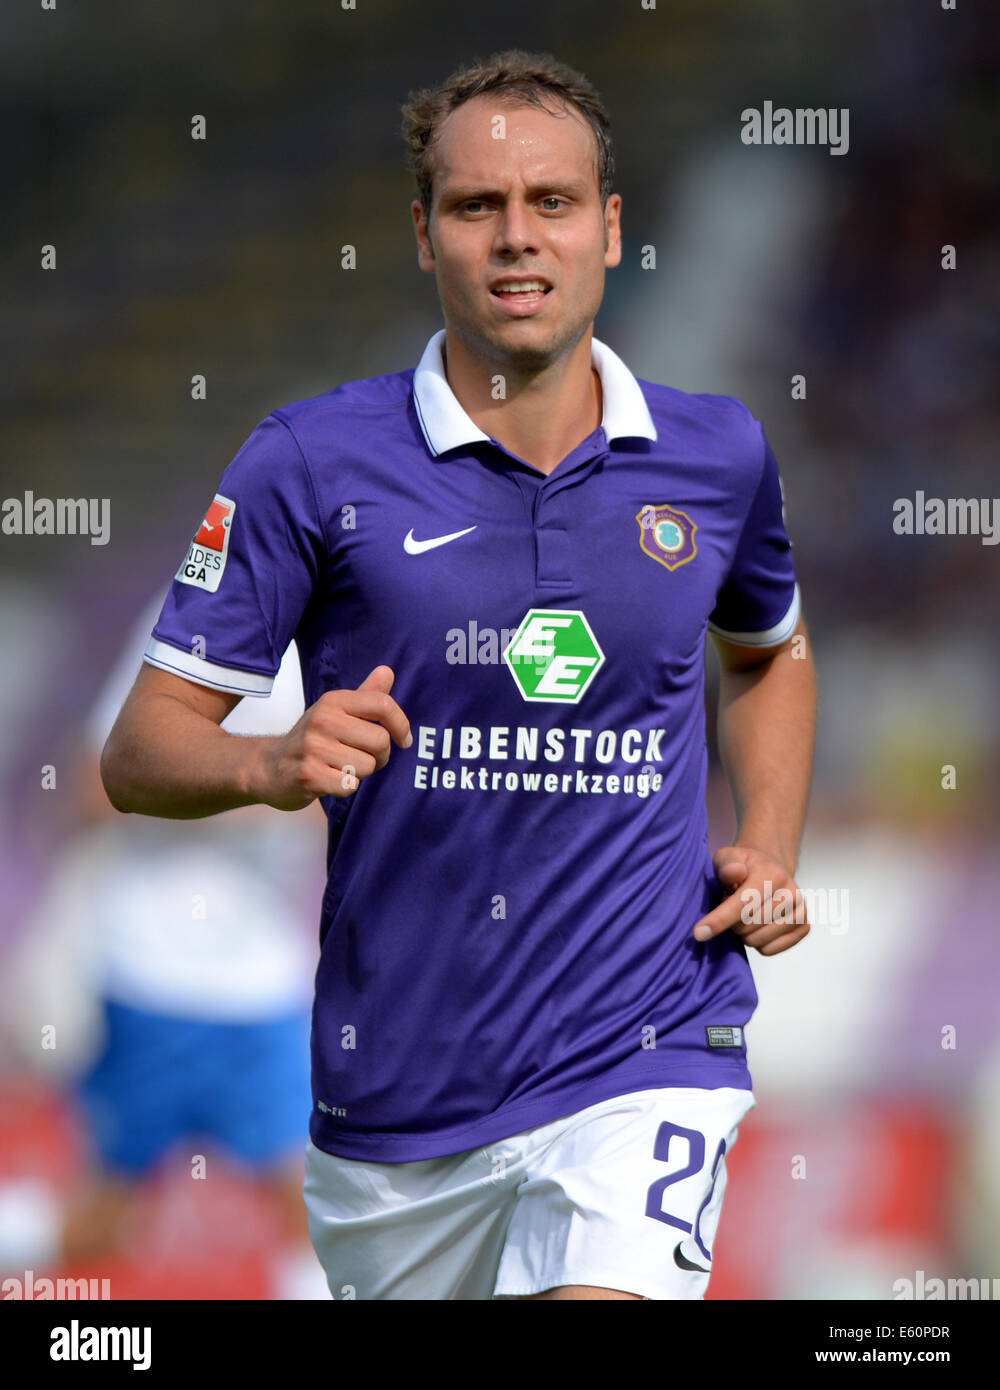 Aue, Germany. 09th Aug, 2014. Aue's Rico Benatelli during the German second league soccer match between Erzgebirge - Stock Image